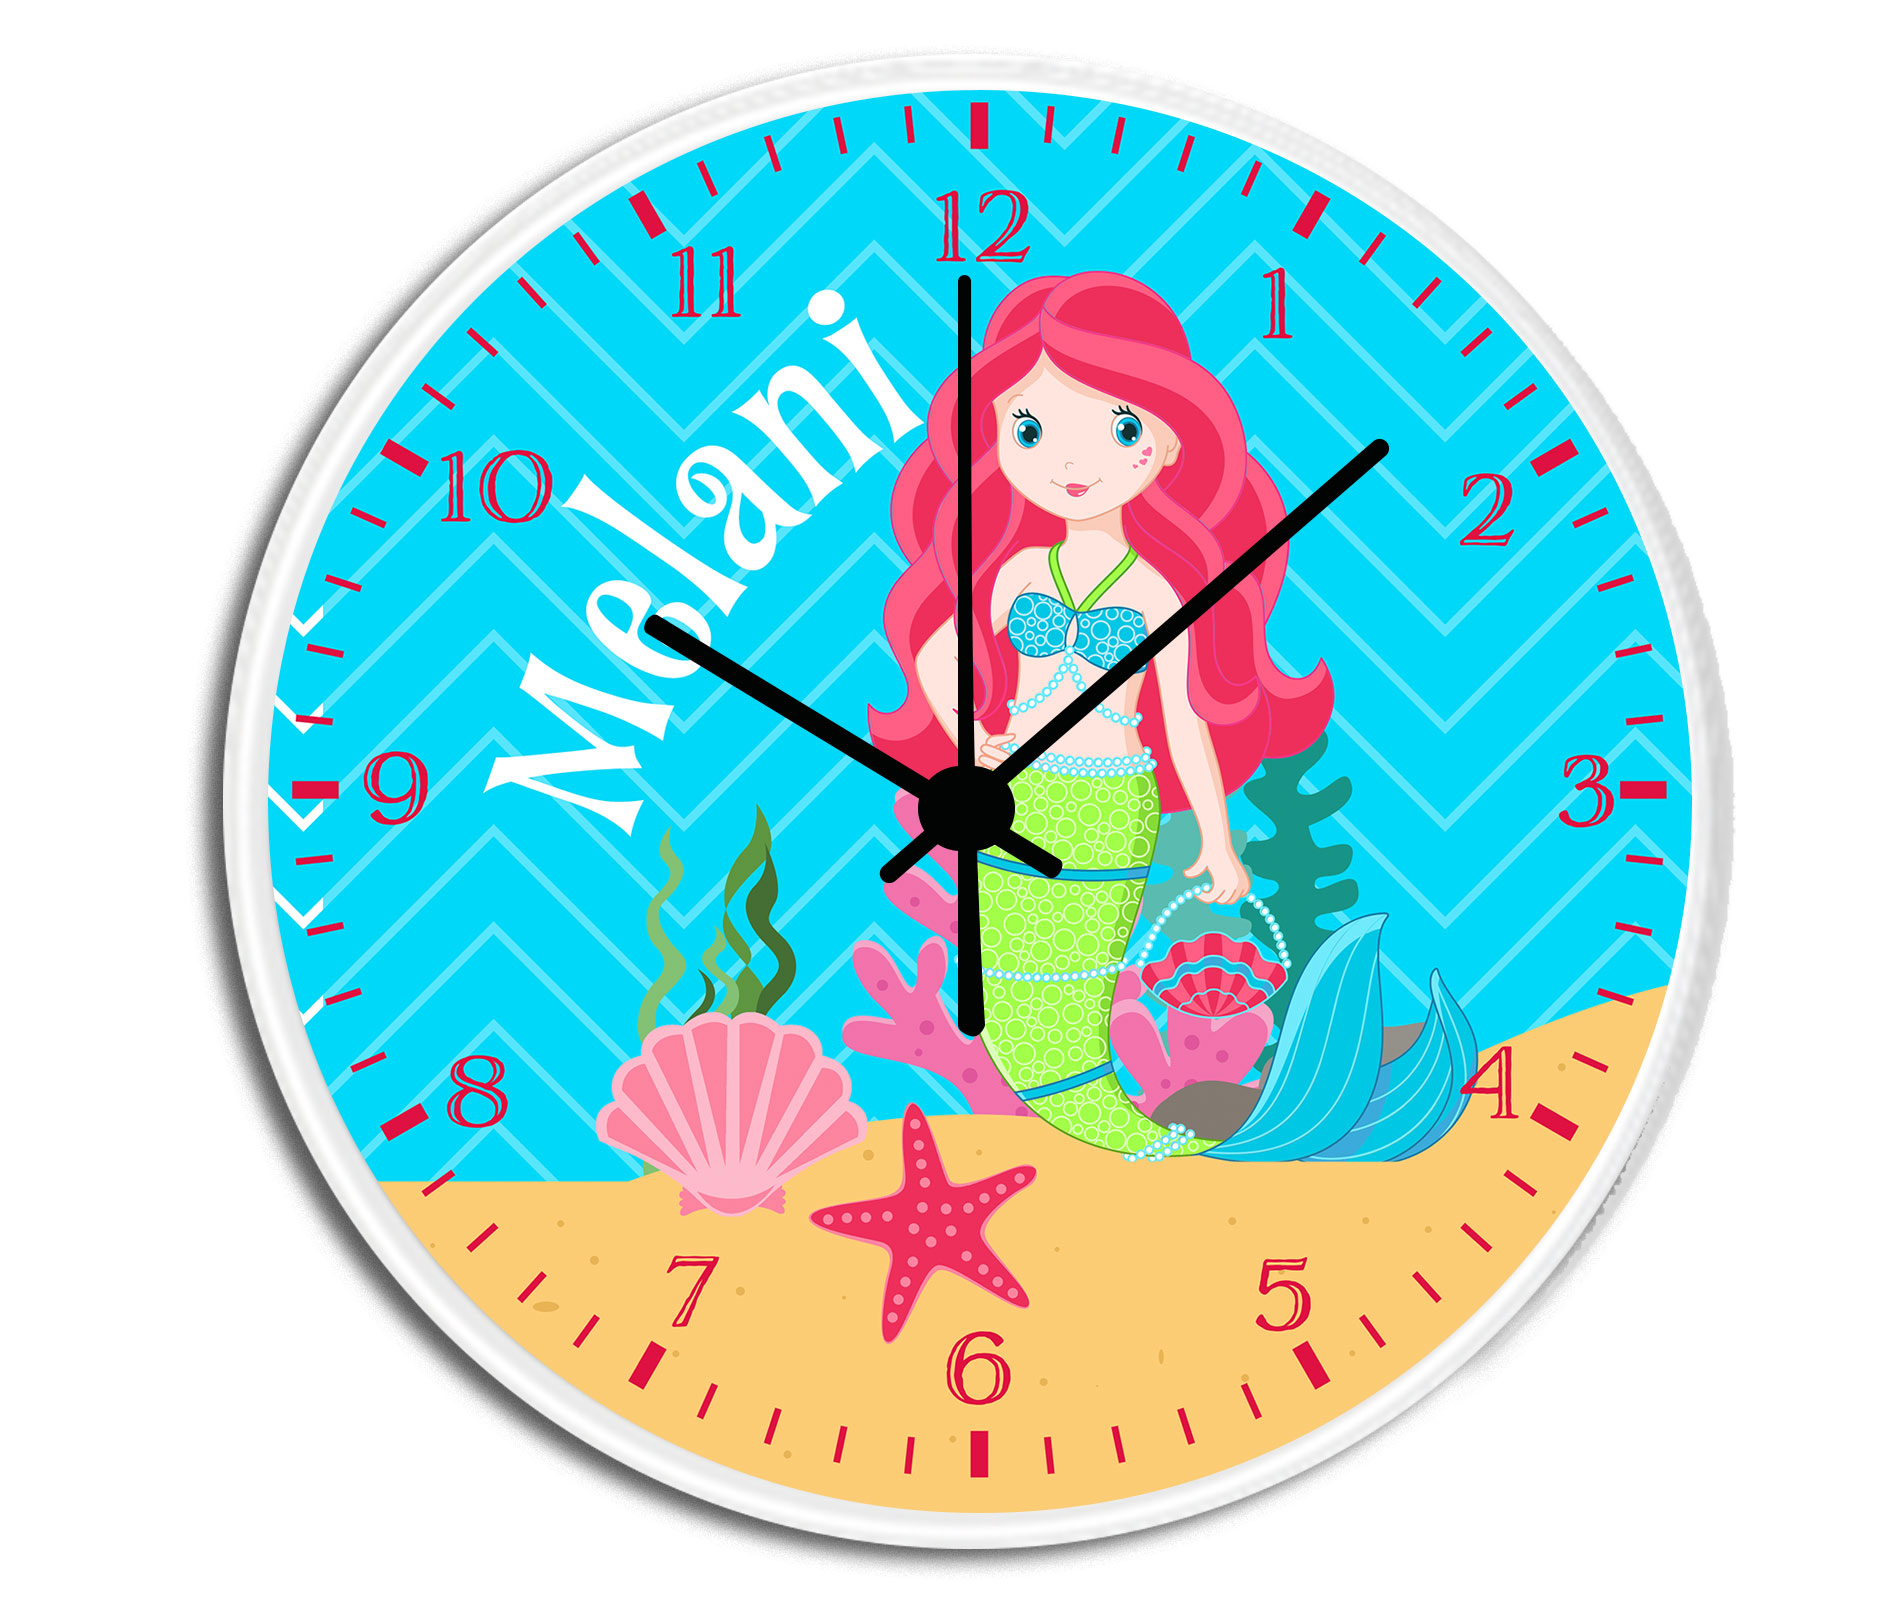 Mermaid girls personalized childrens decorative wall clock wall mermaid clock amipublicfo Gallery